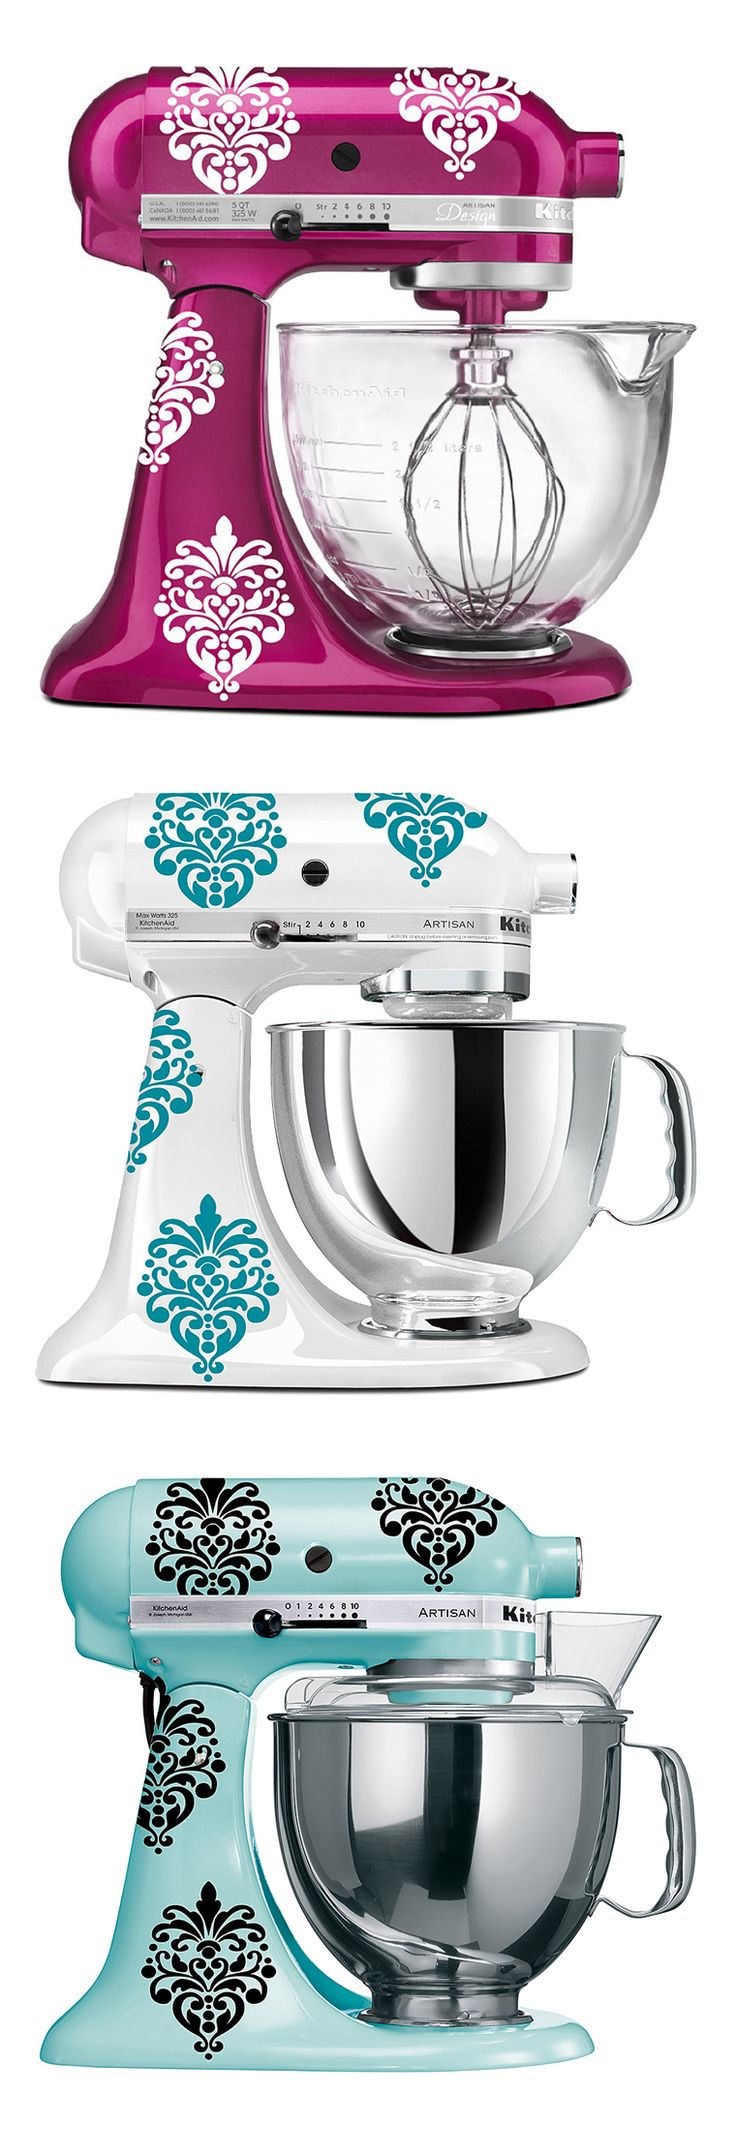 Kitchenaid Mixer Decals Ideas ~ Best kitchen aid mixers images on pinterest cooking